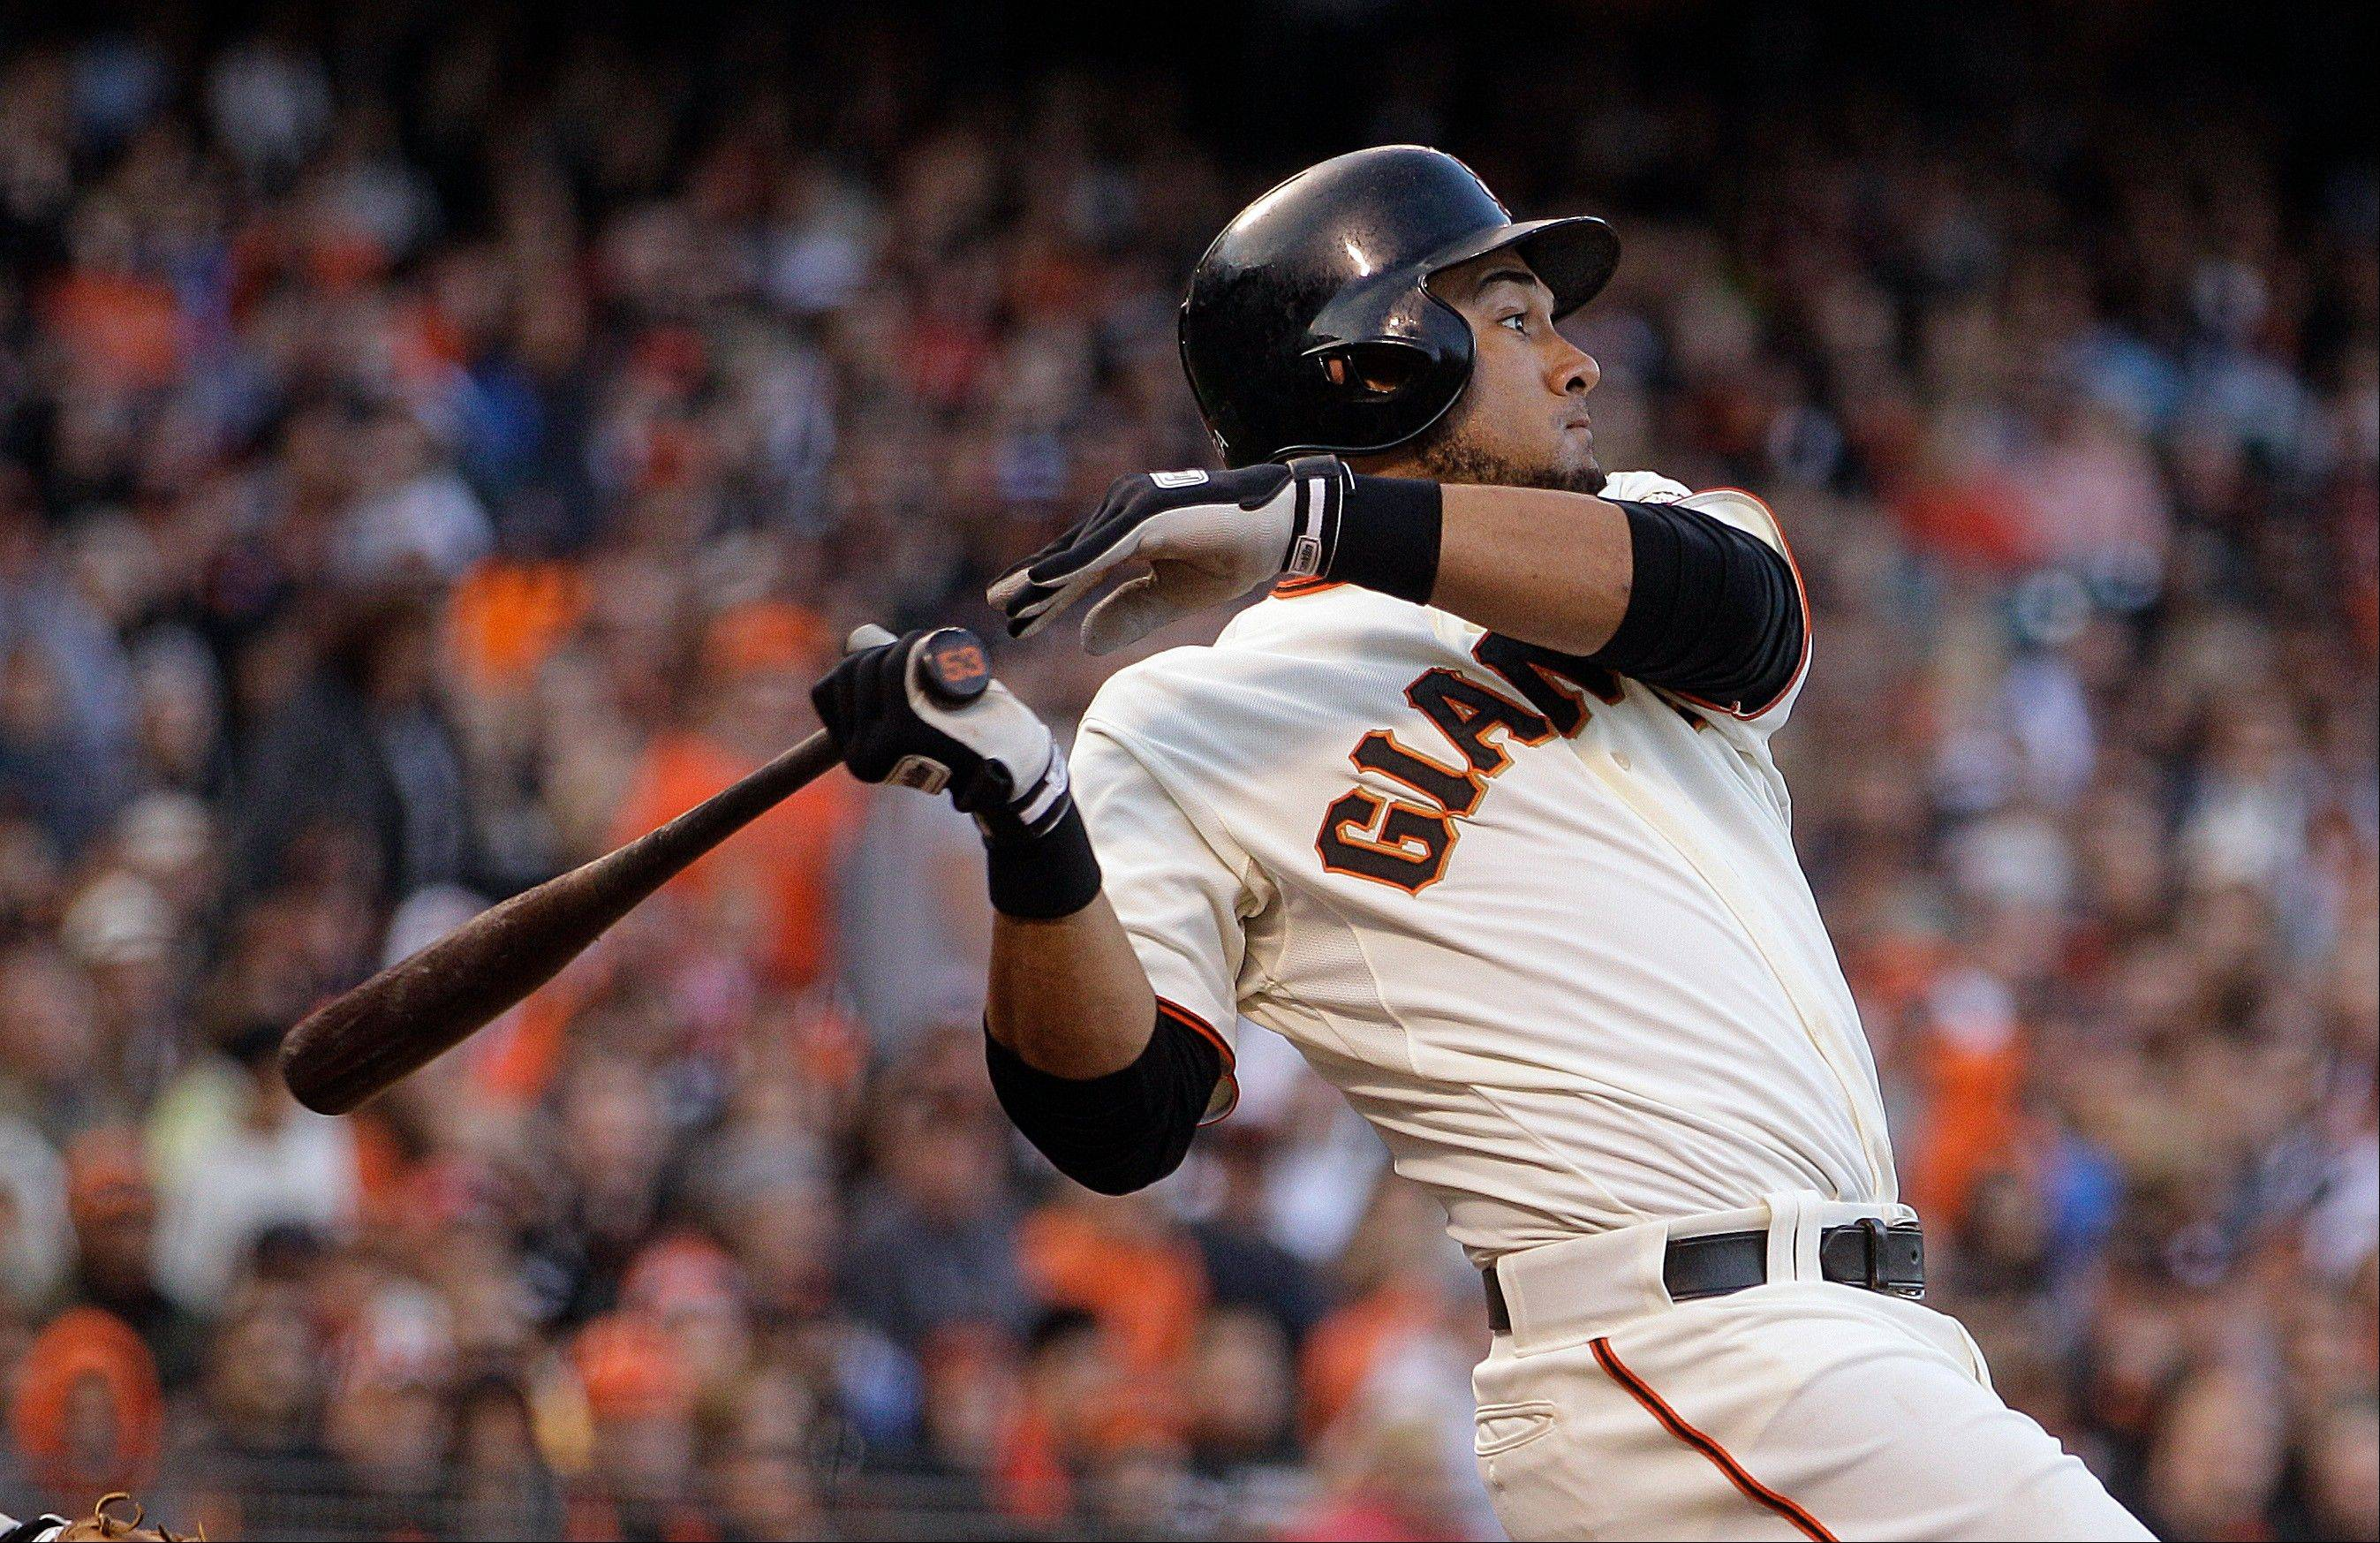 San Francisco's Melky Cabrera was batting .346 with 11 home runs and 60 RBI before his 50-game suspension.